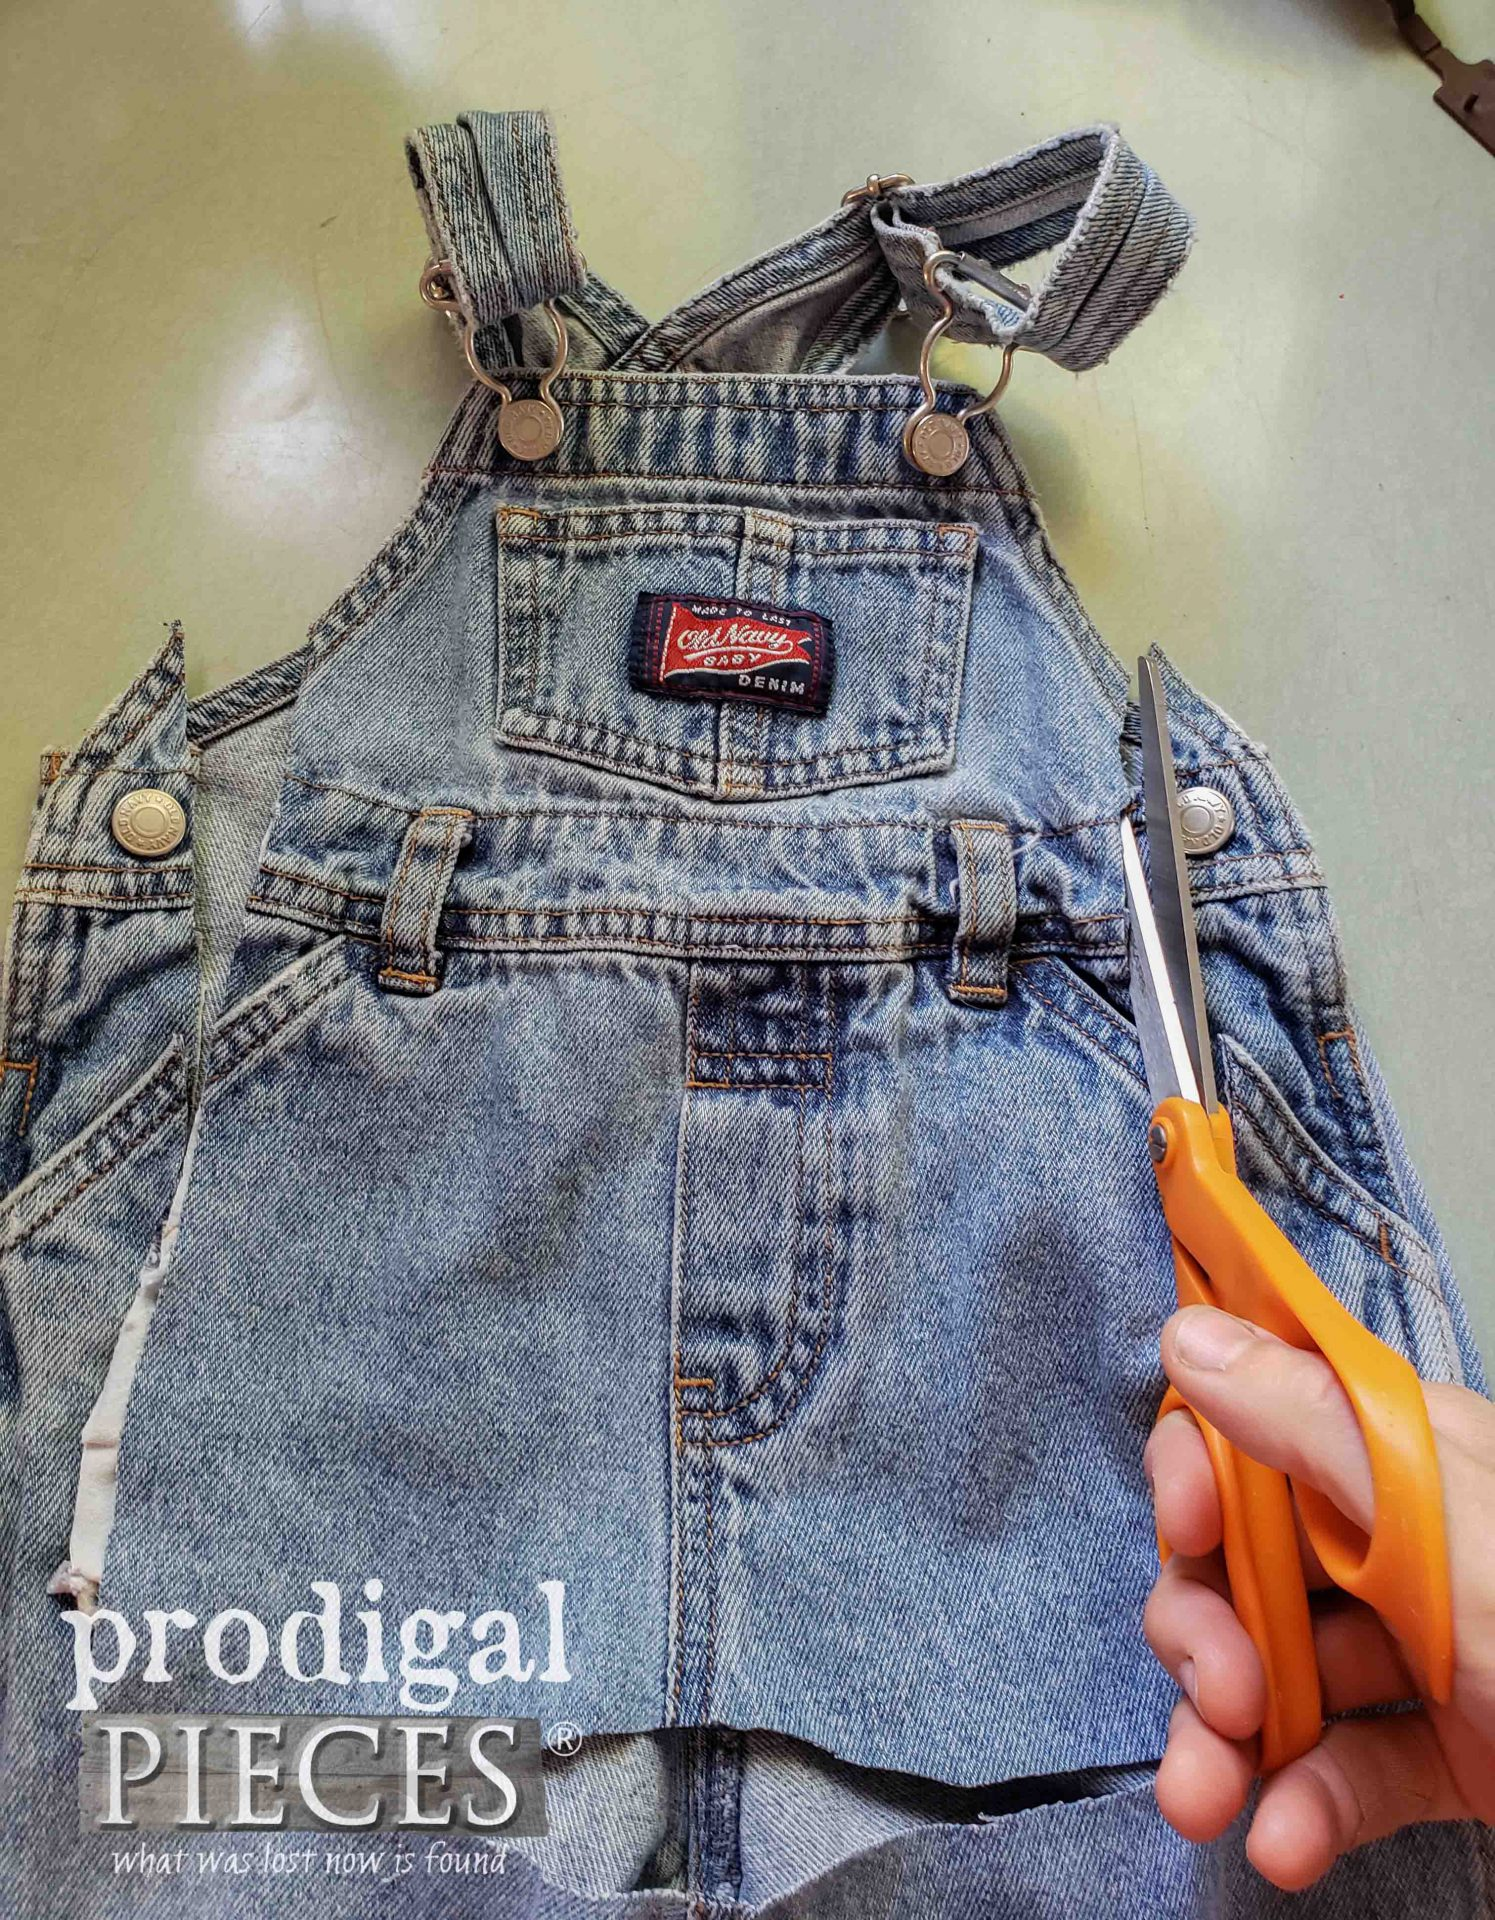 Cutting Baby Bib Overalls for DIY Doorstop | Tutorial at Prodigal Pieces | prodigalpieces.com